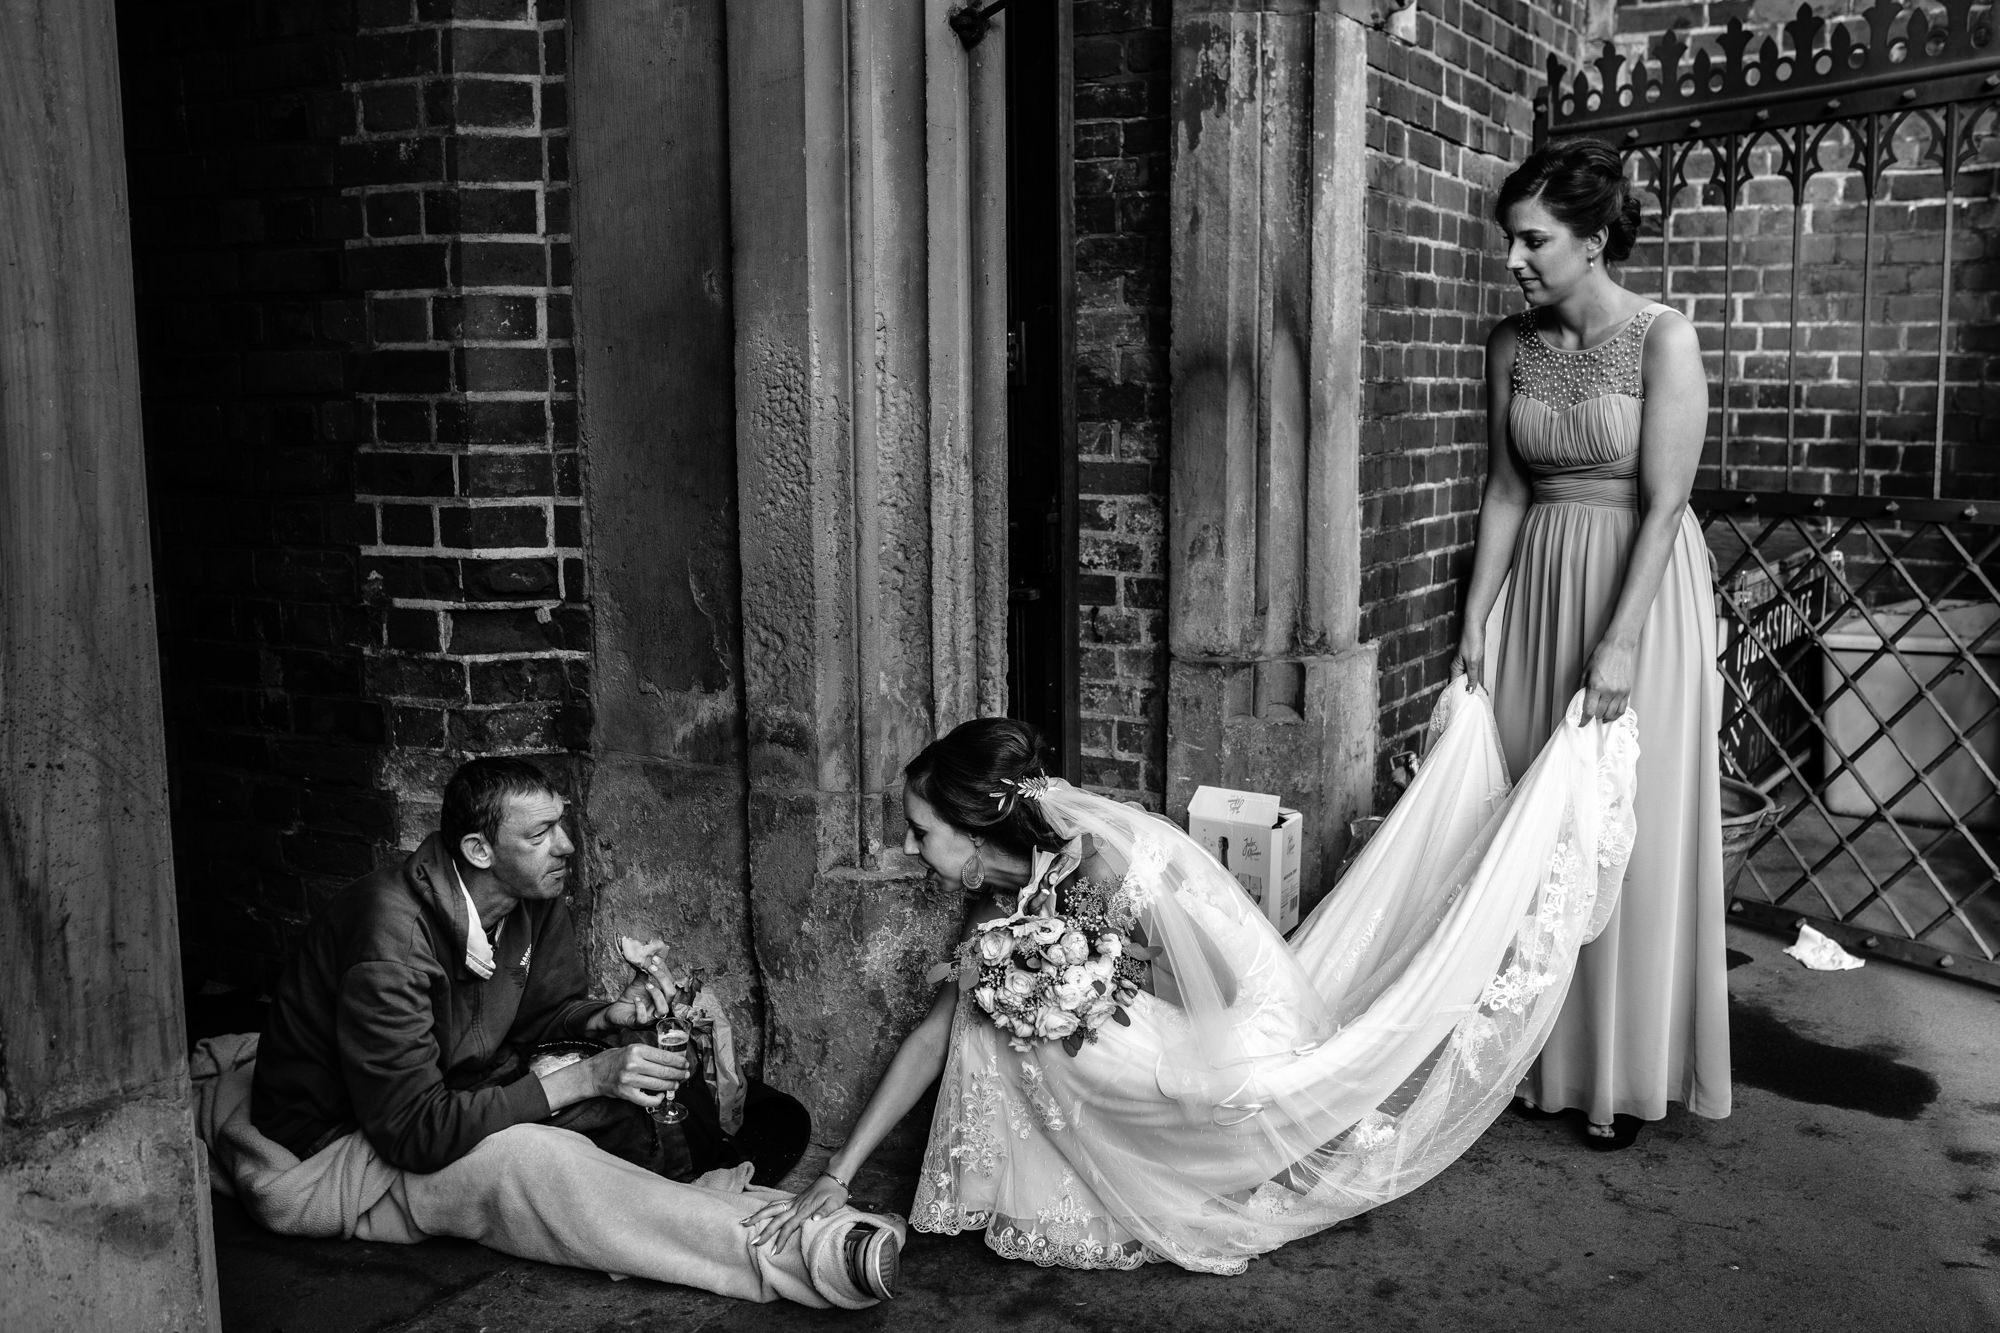 Bride stops to be present with homeless man - photo by Yves Schepers